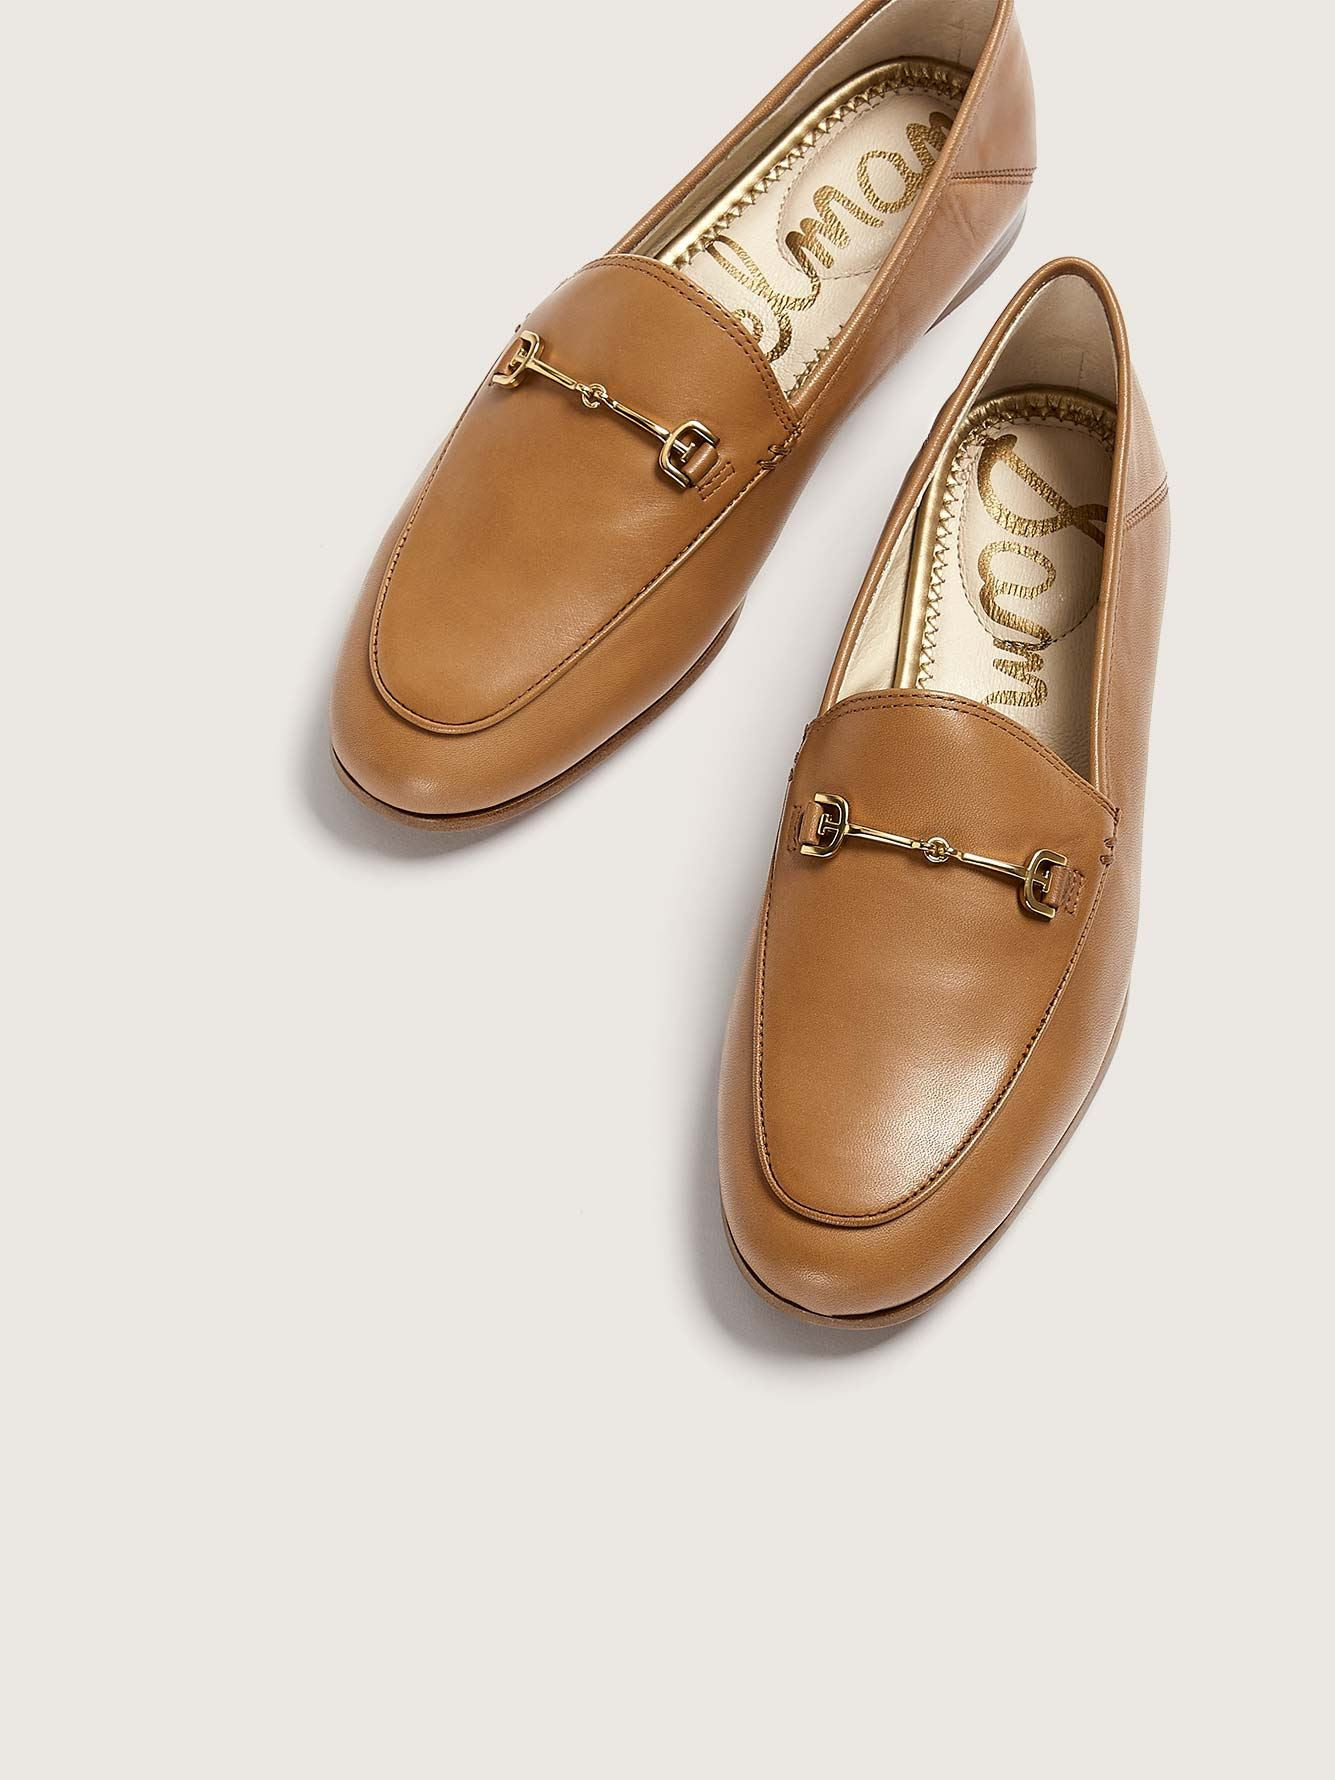 Wide Lorraine Leather Buckle Loafers - Sam Edelman